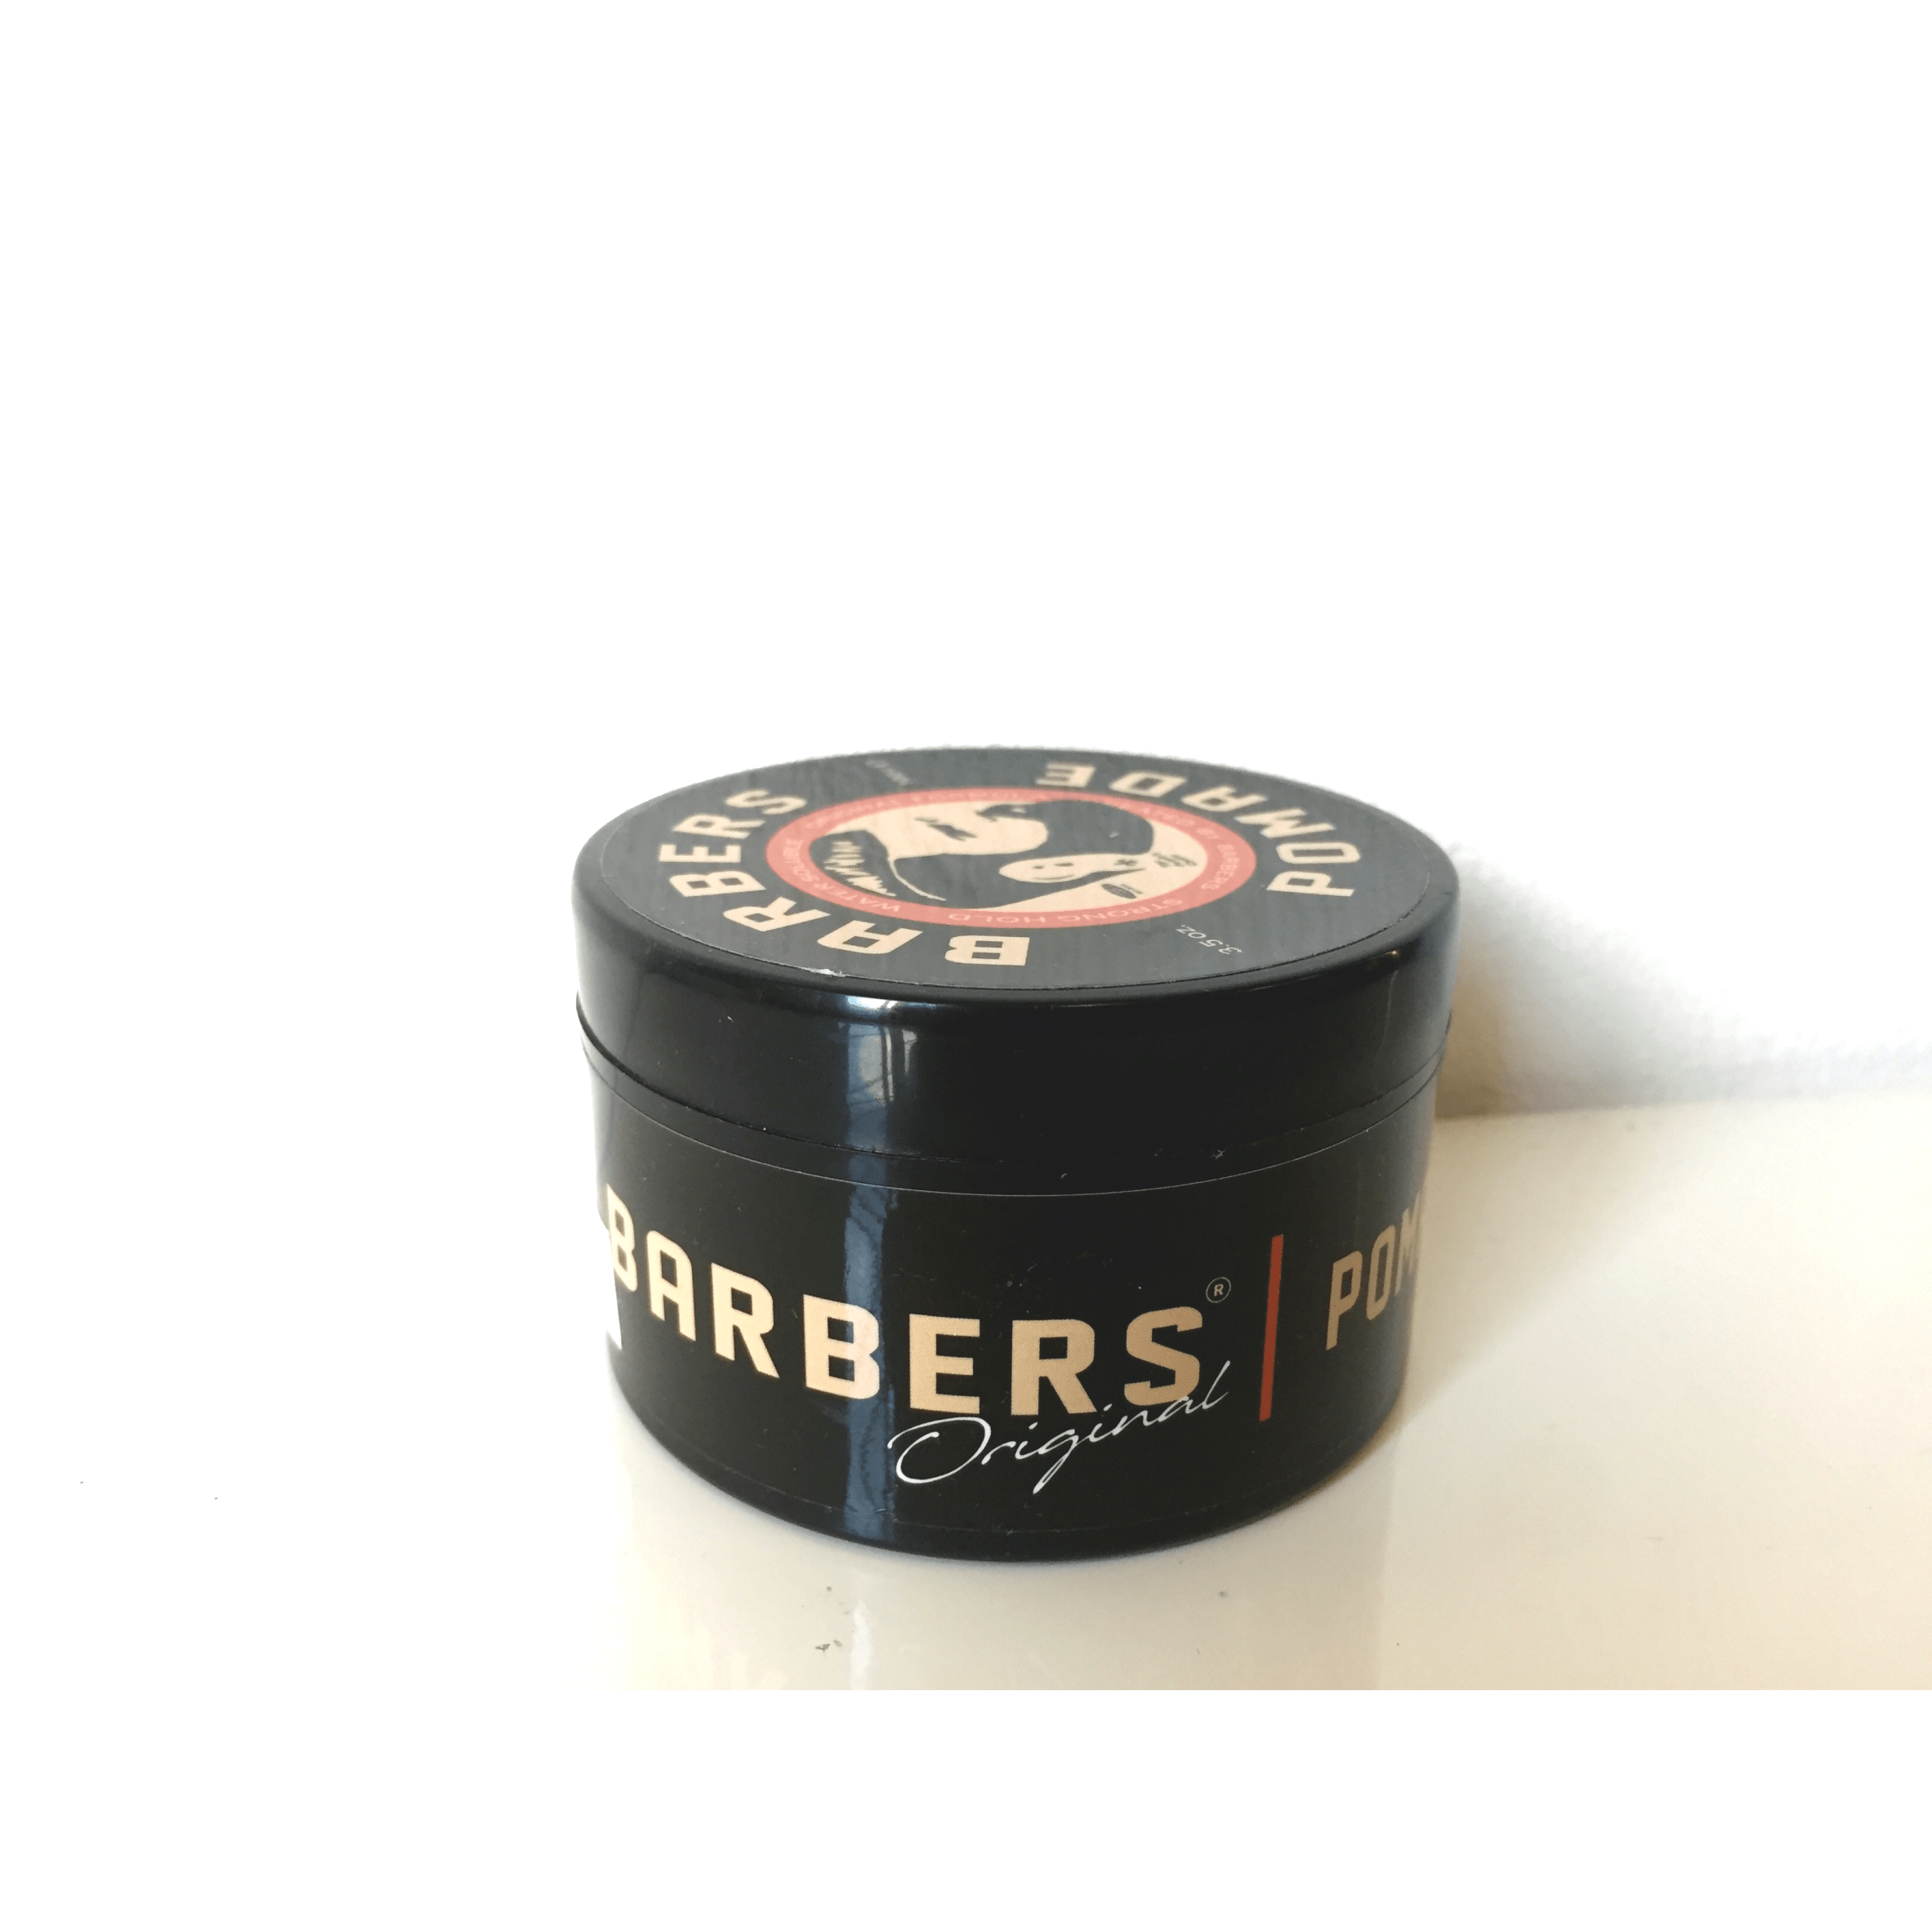 barbers-pomade-2.png